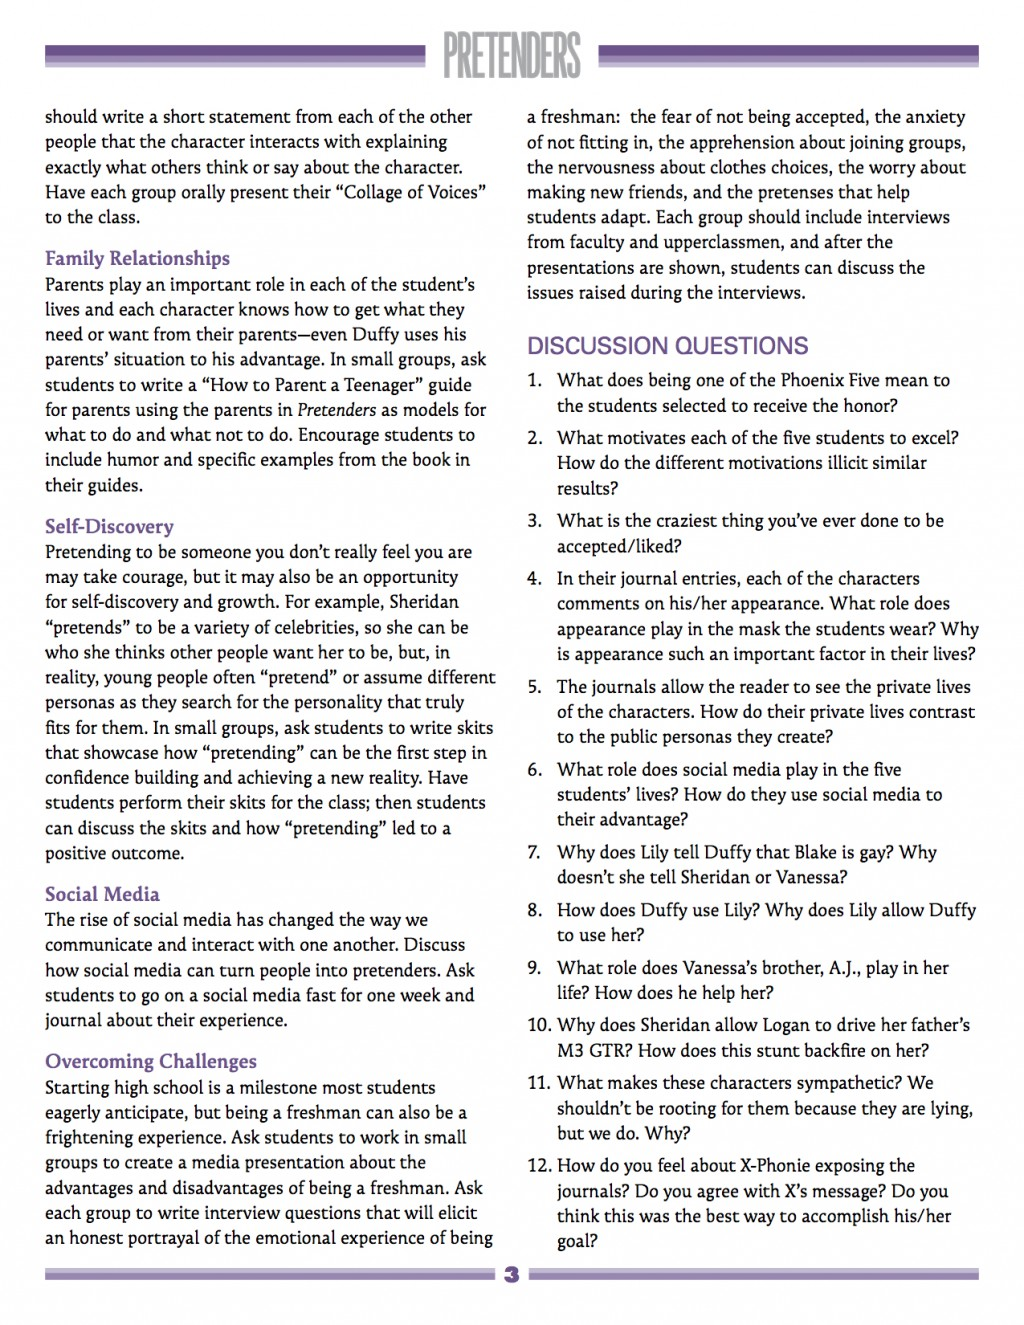 006 Who What Inspires You Yale Supplement Essay Educatorsguide Pretenders Tips Example College Confidential For University Questions Amazing Prepscholar Guide Large